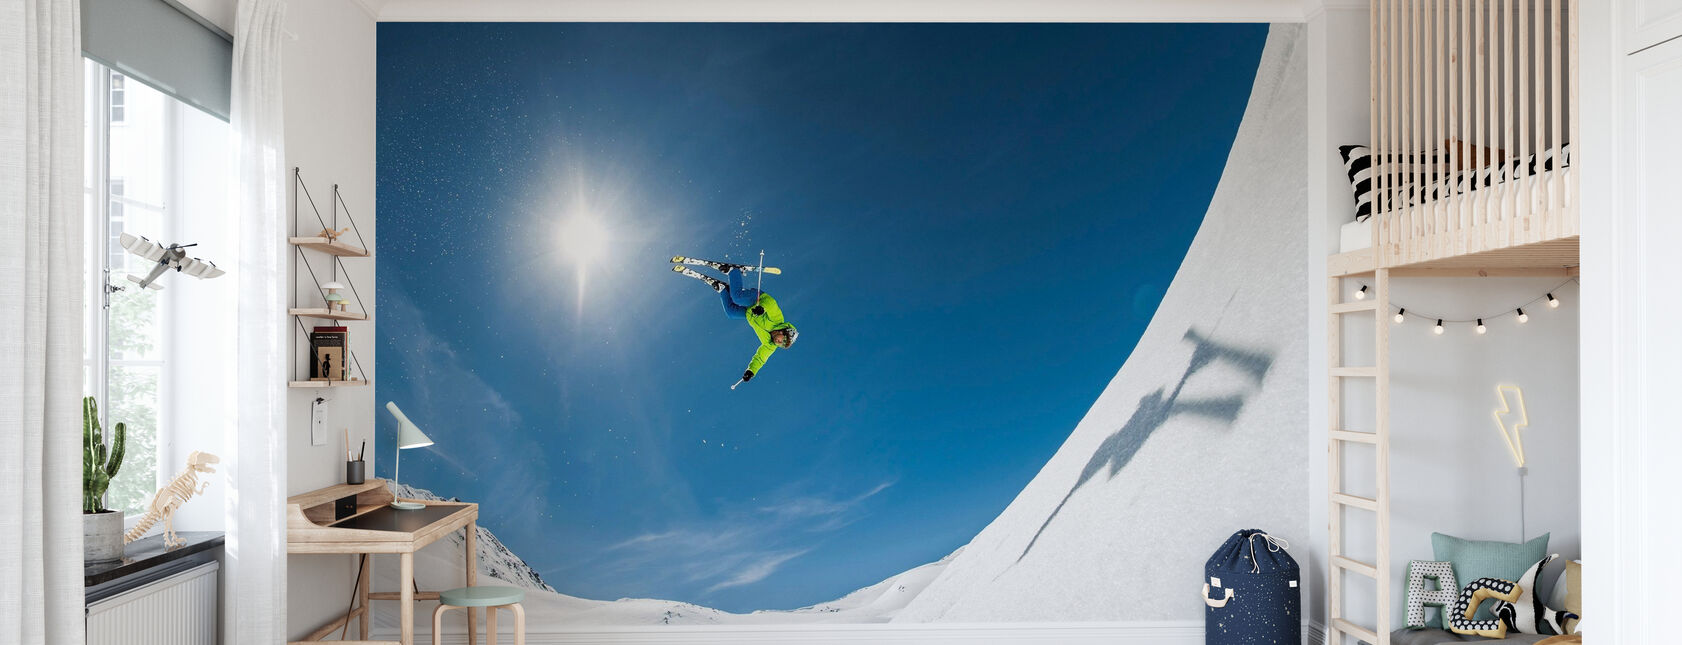 Backcountry Backflip - Wallpaper - Kids Room